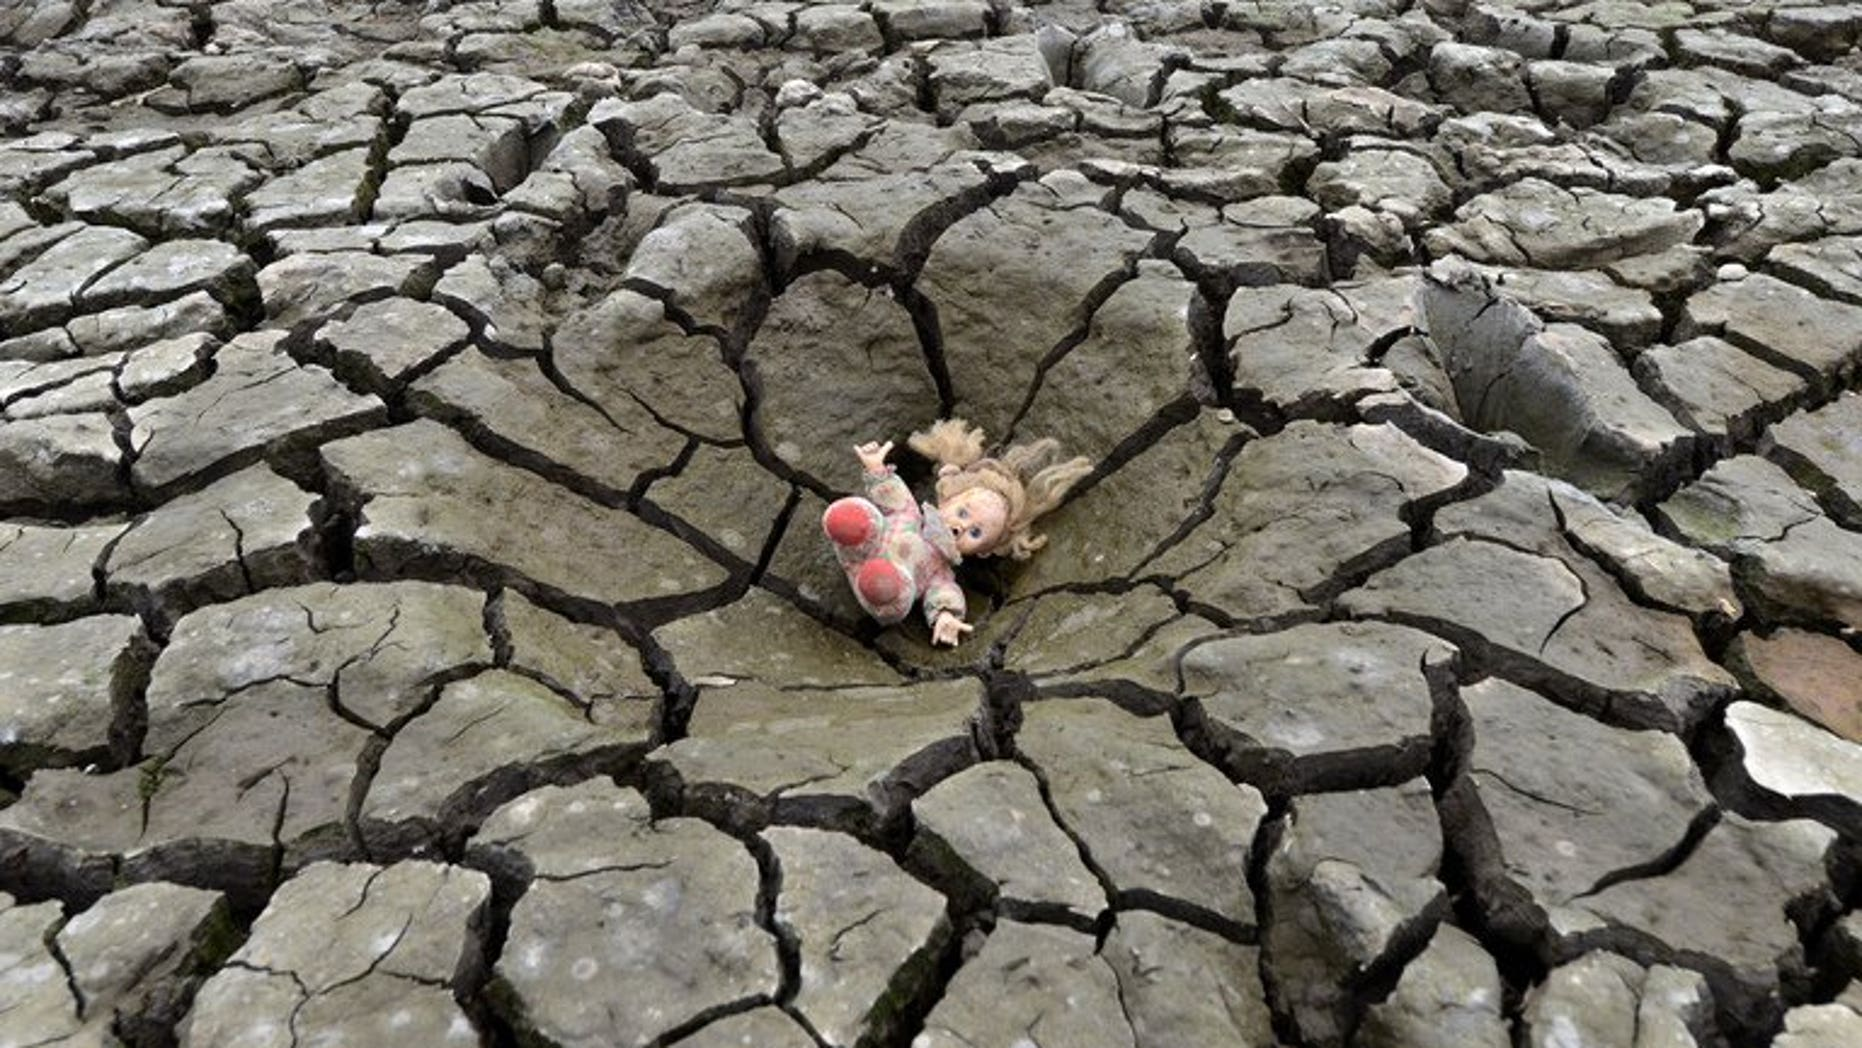 A doll lies on a hole in the dry soil of Los Laureles dam, southern Tegucigalpa, in Honduras on May 22, 2013. The first decade of the 21st century was the hottest on record, marked by unprecedented climate and weather extremes that killed more than 370,000 people, the United Nations weather agency said Wednesday.